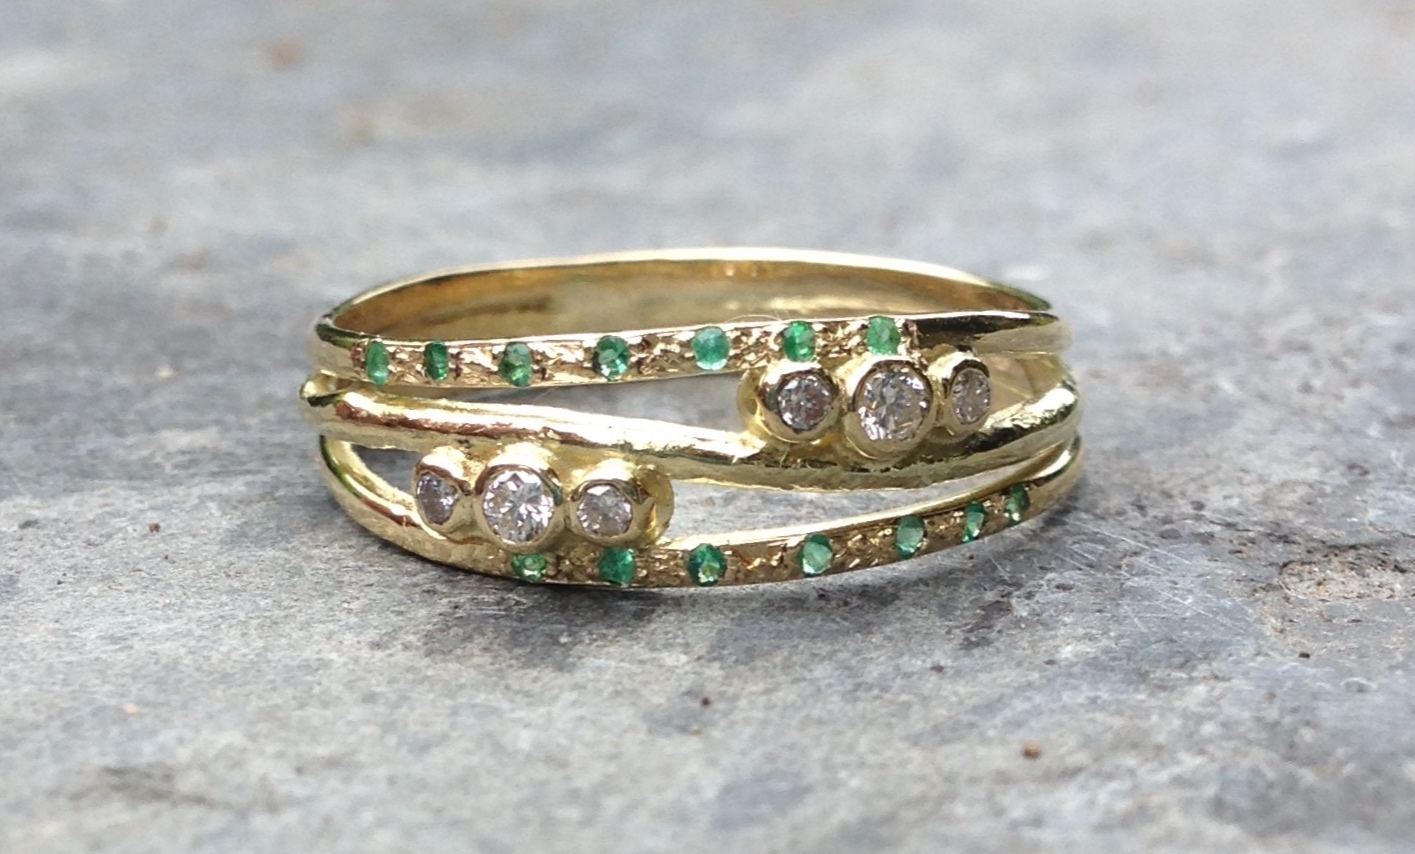 18ct Yellow Recycled Gold Engagement Ring, inspired by a love for the Sea and Rugged Coastlines, set with Ethically Sourced Emeralds and Diamonds